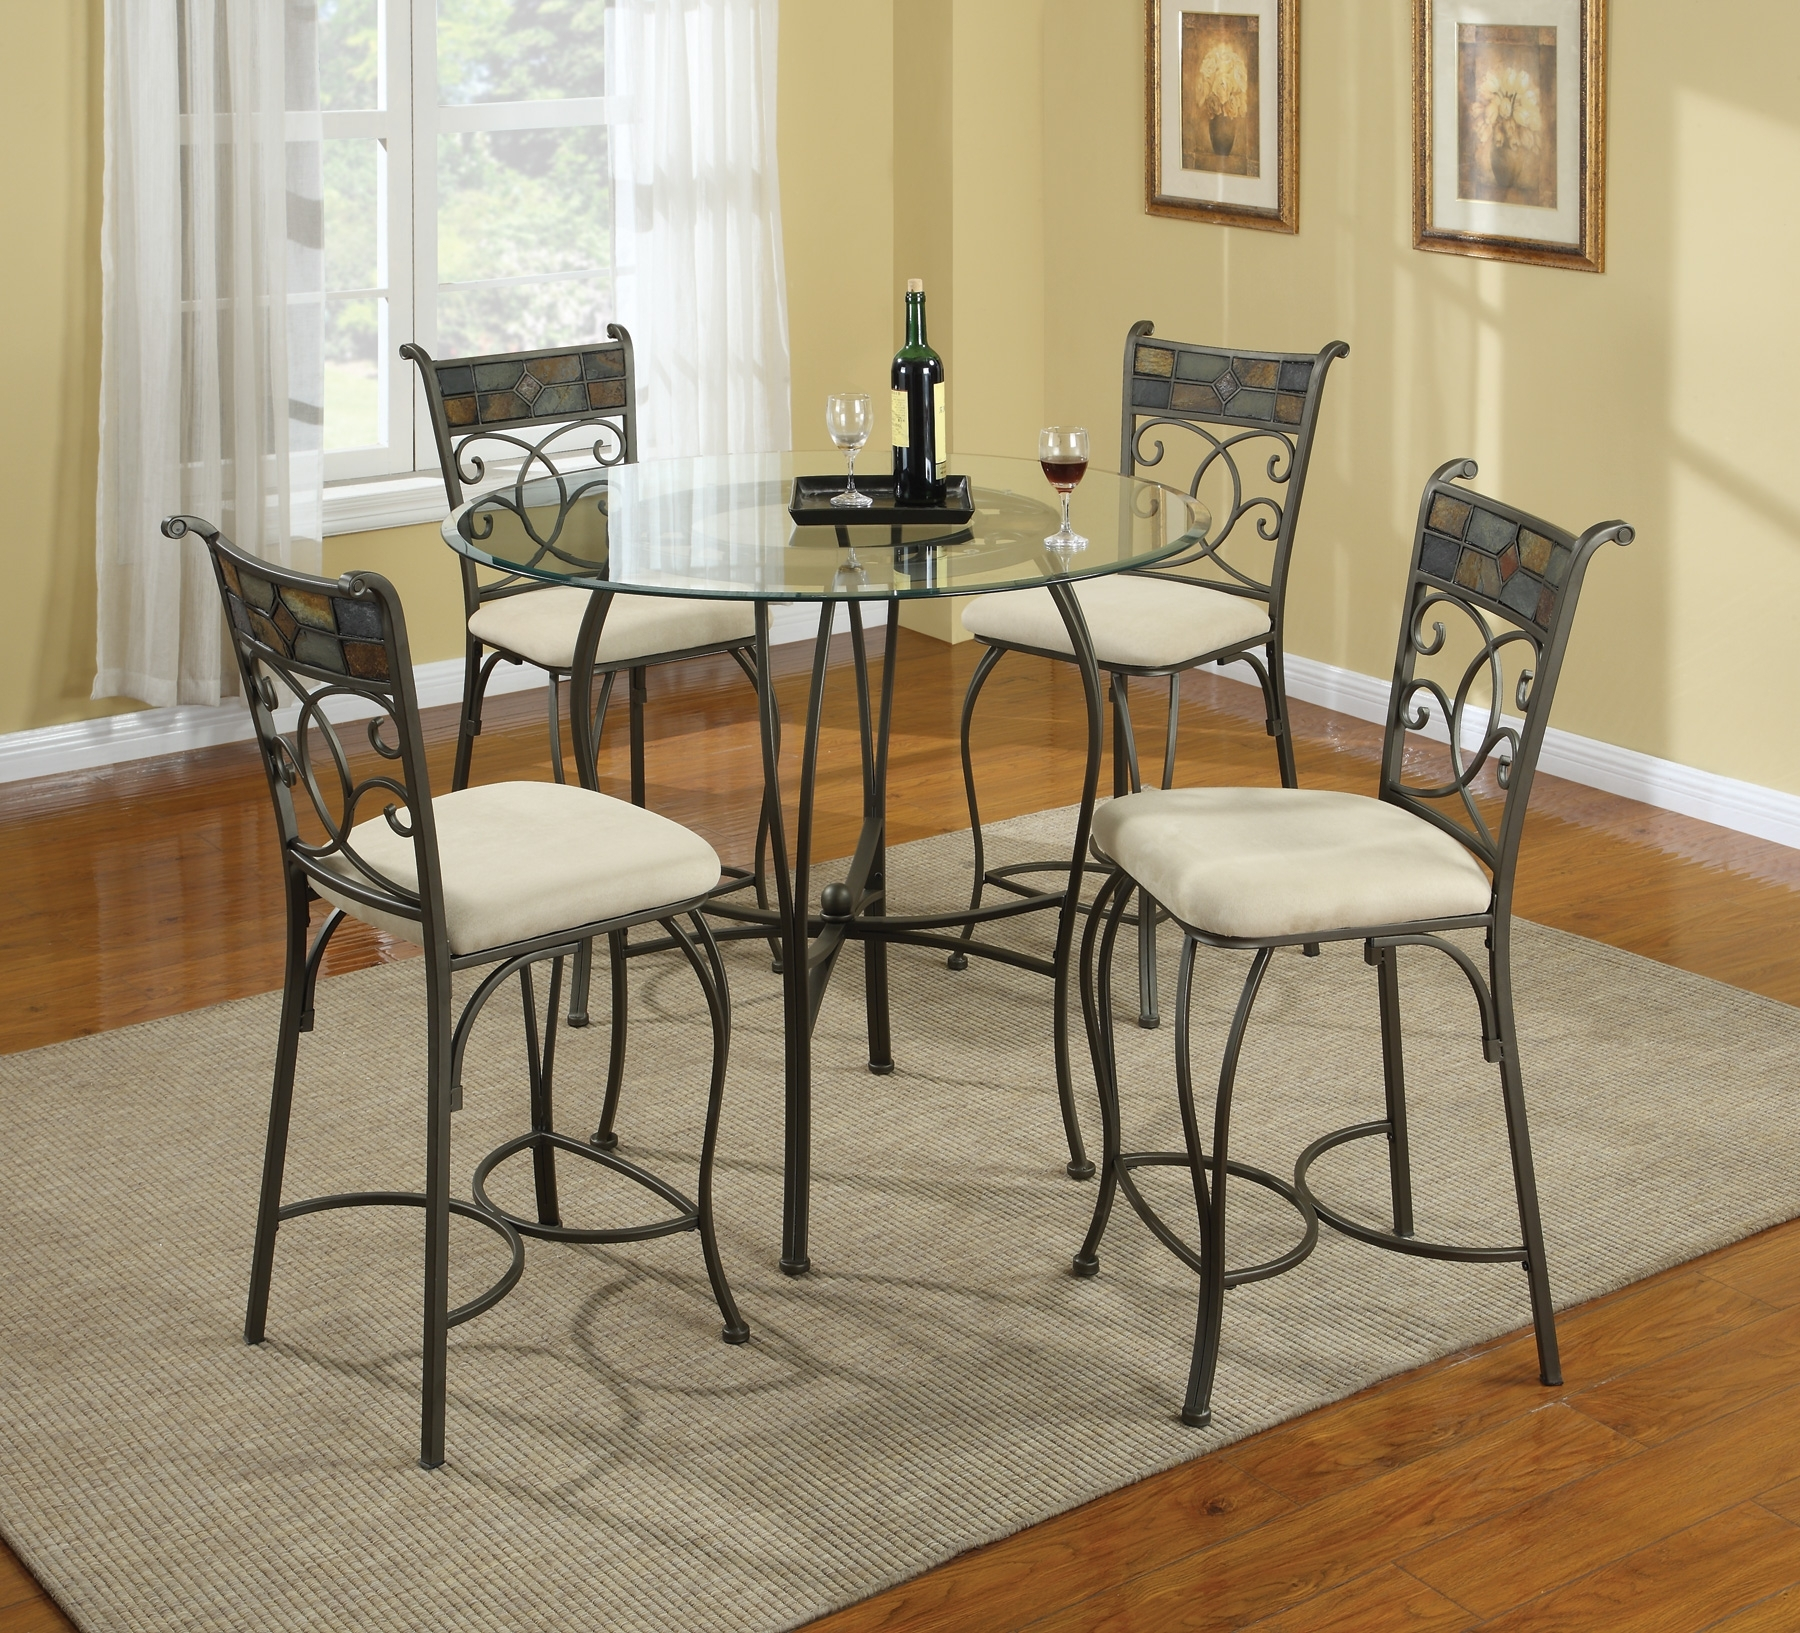 Retro Glass Dining Tables And Chairs Inside Well Known Wrought Sets Dining Room Glass Table Stunning Small Extending Chairs (View 21 of 25)